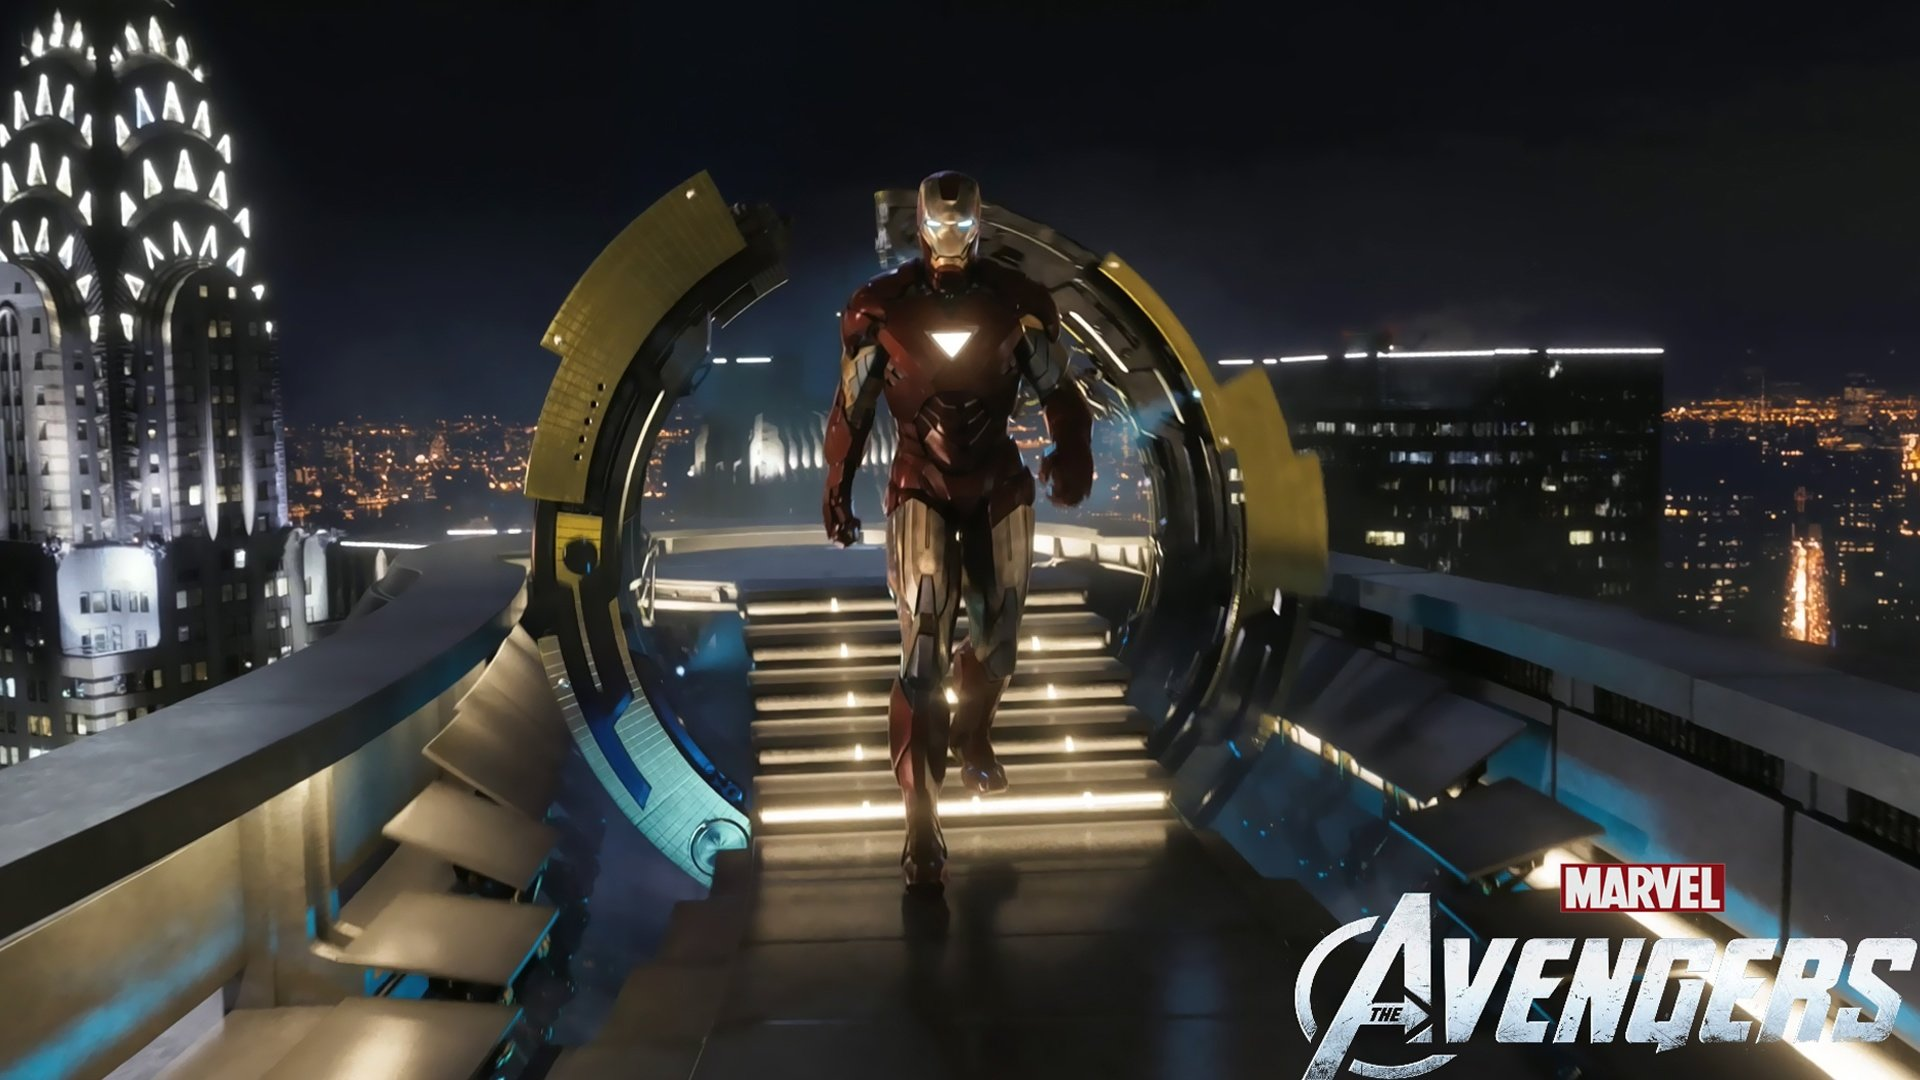 Awesome The Avengers free wallpaper ID:347395 for full hd computer